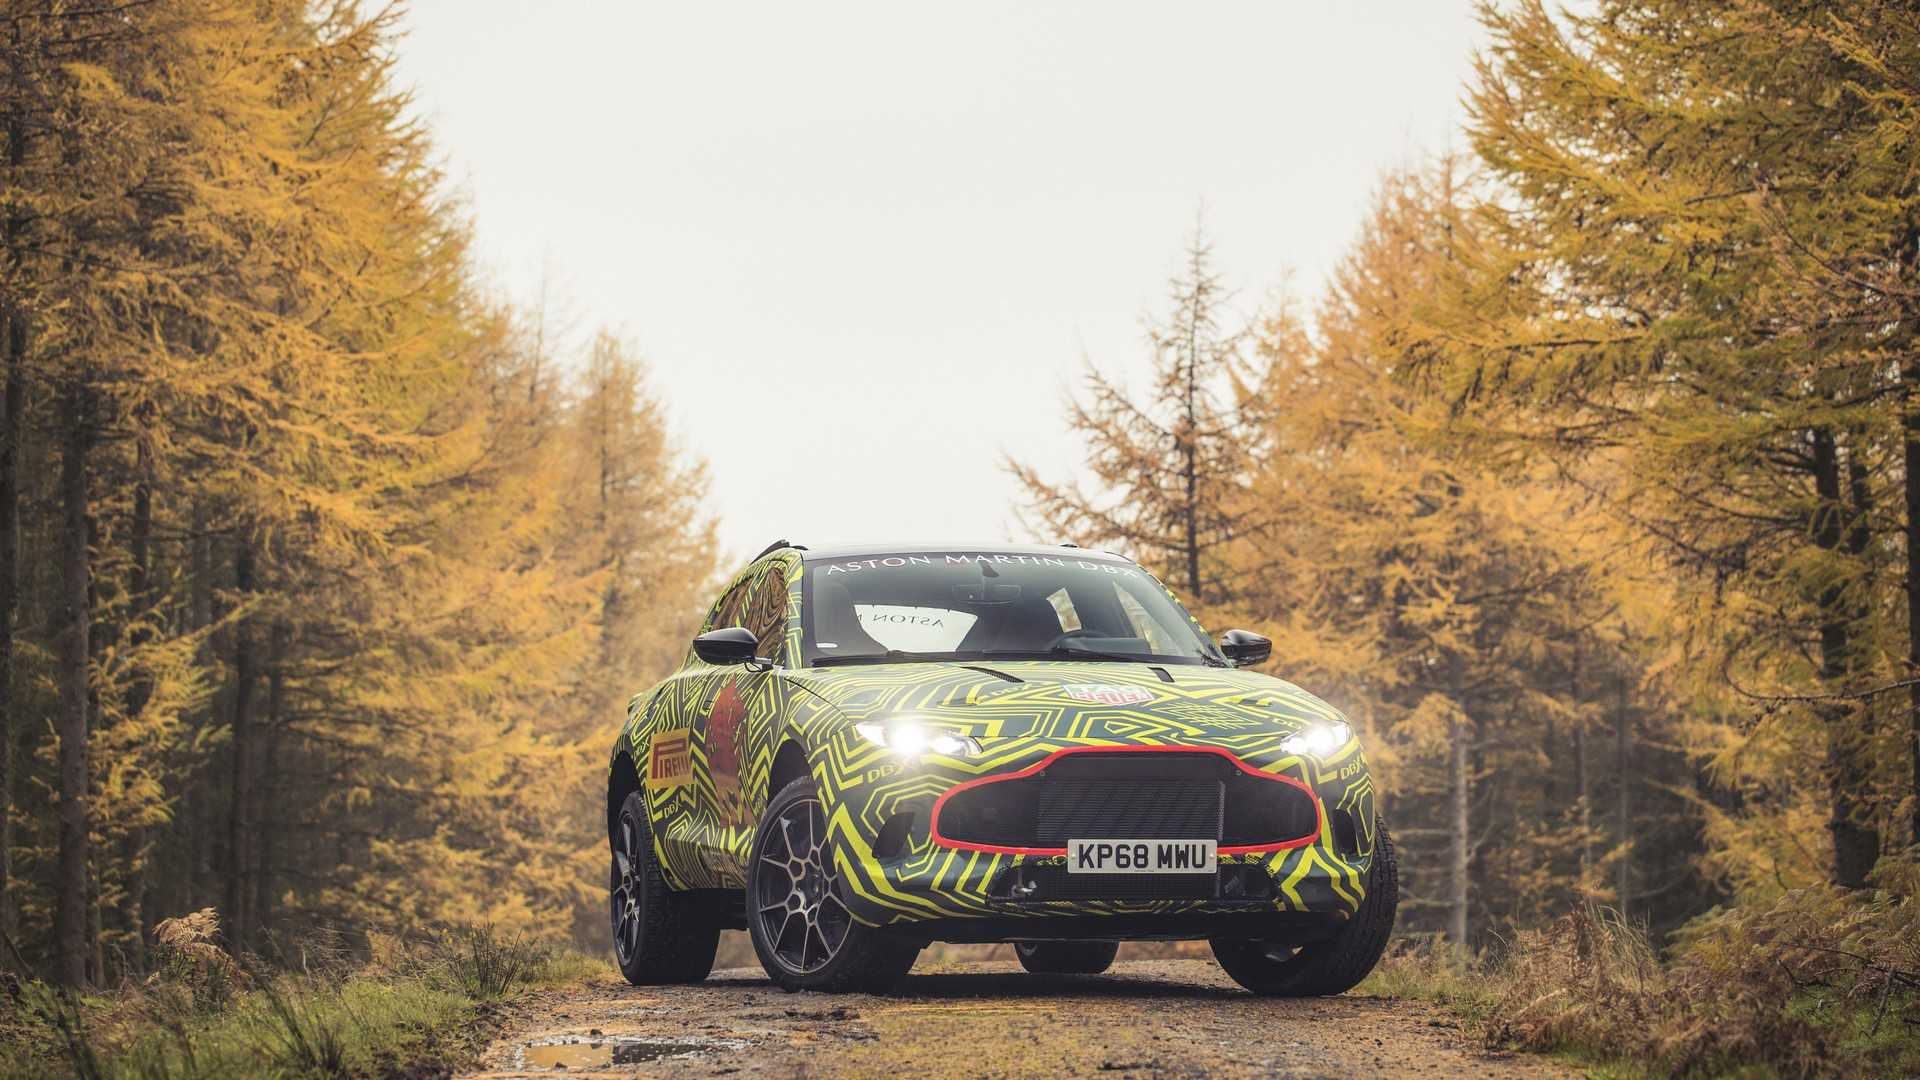 Aston Martin's First SUV Caught Testing In Production Trim